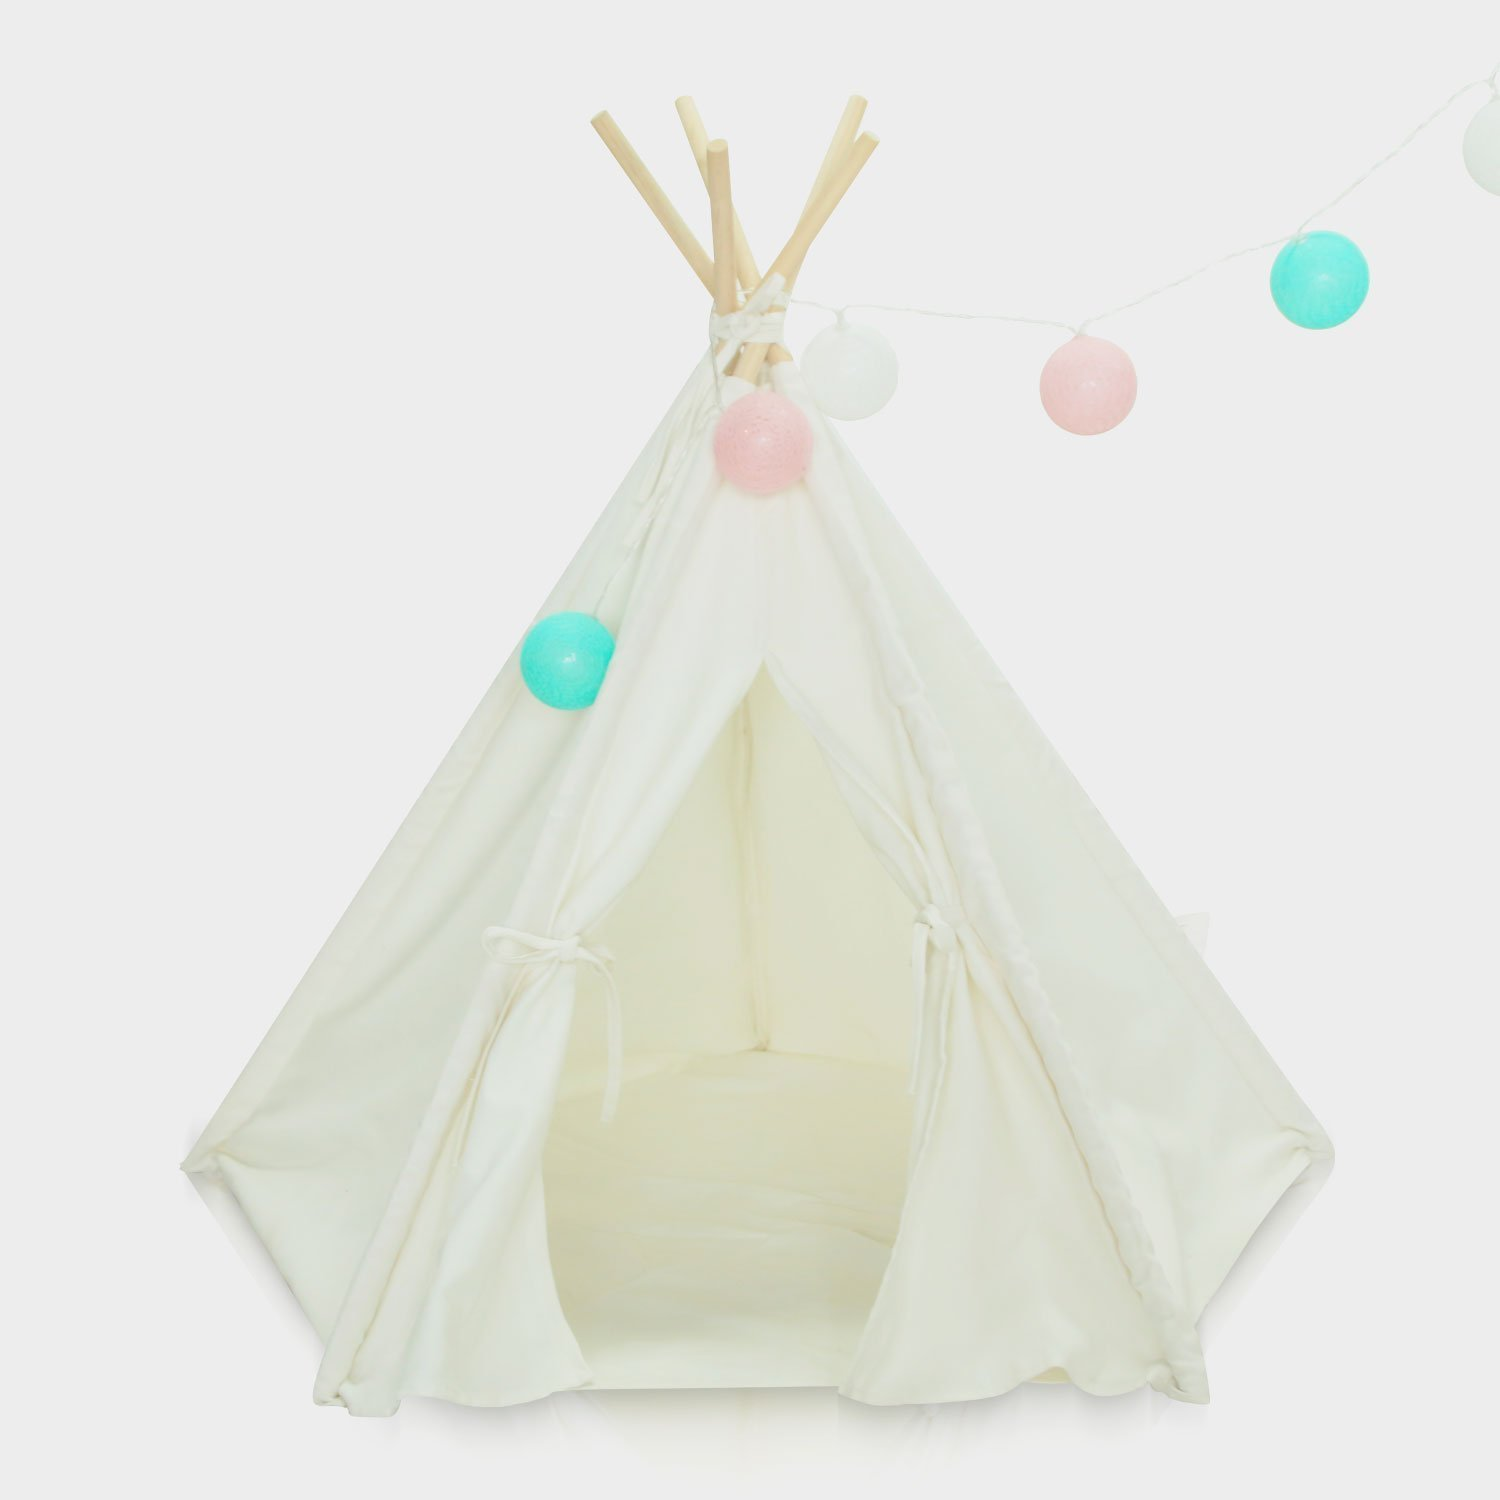 Pet Teepee - Small Dog Puppy Cat Rabbit Pet House Tent with 5 Walls Design Pet Animals Habitats